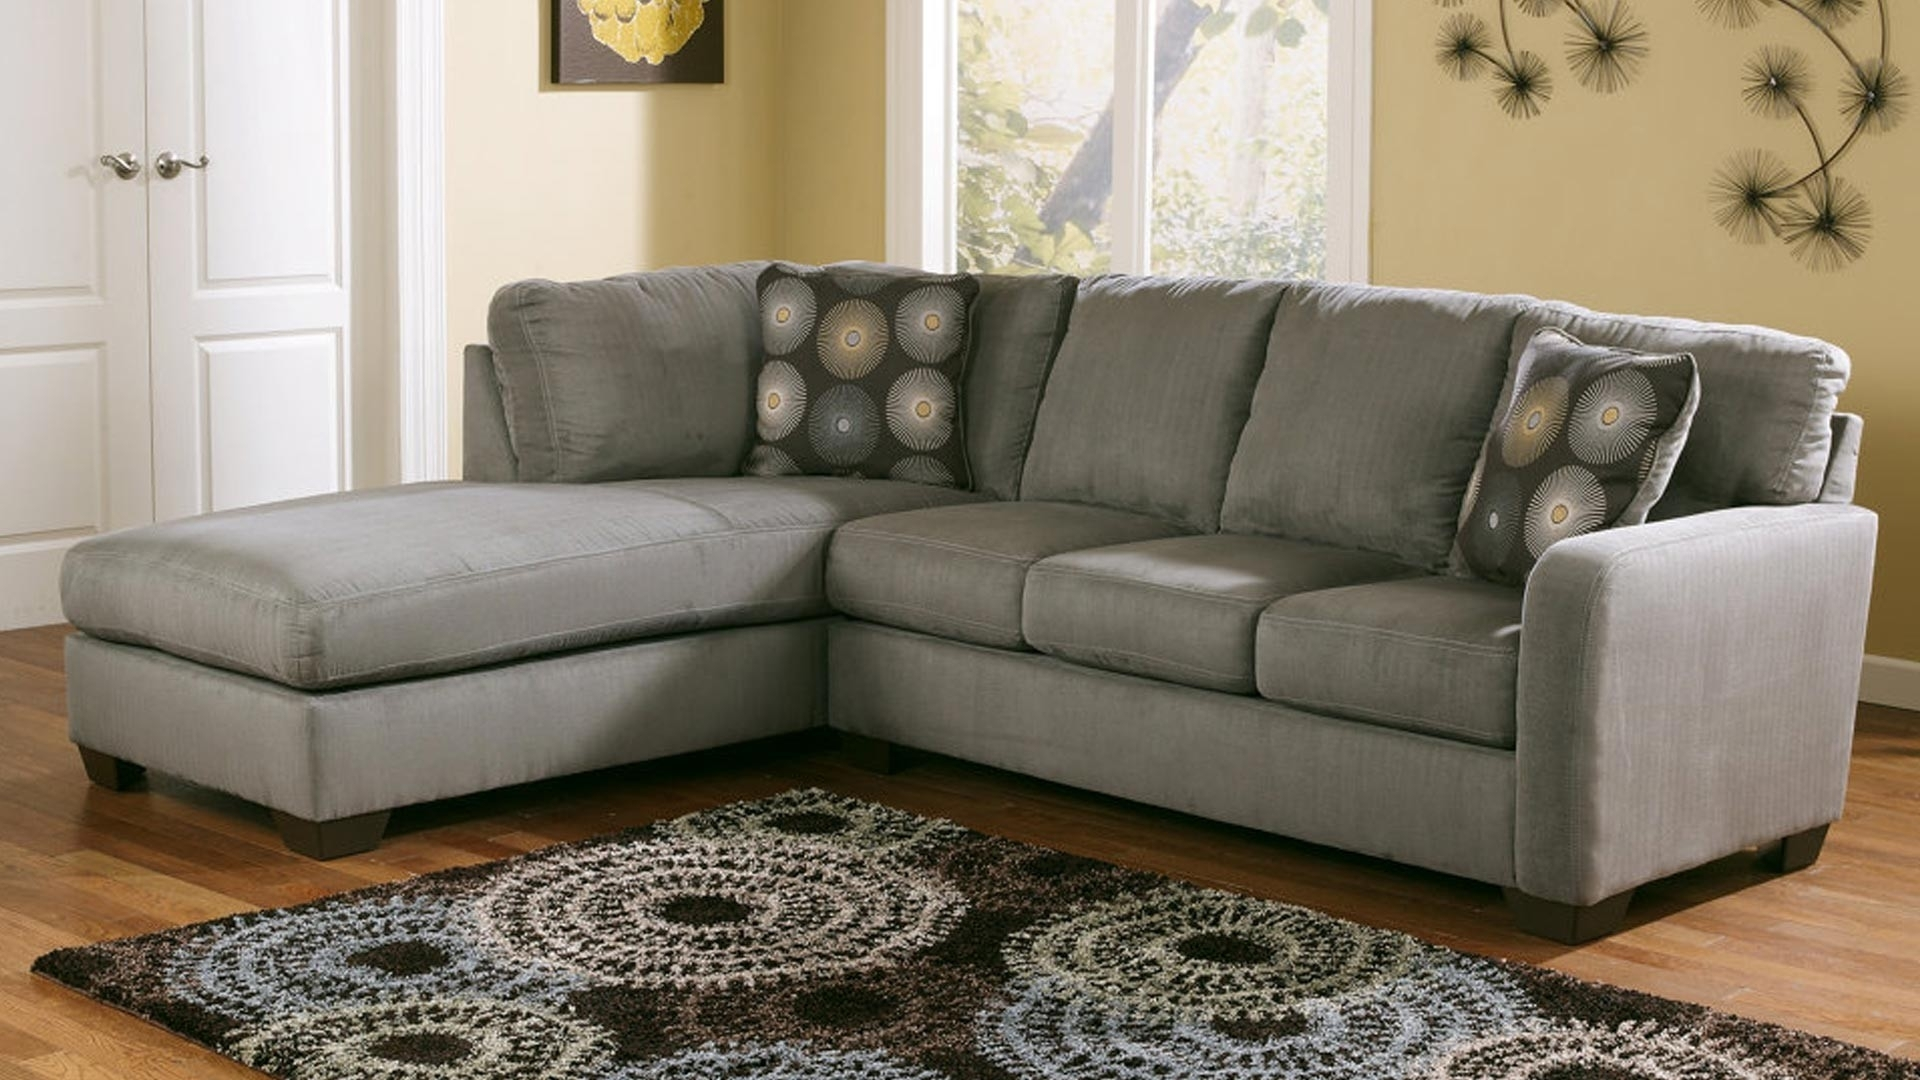 99+ 2 Piece Sectional – Paris 2 Piece Sectional Sofa, Adrian Avery W Intended For Delano 2 Piece Sectionals With Raf Oversized Chaise (View 24 of 25)